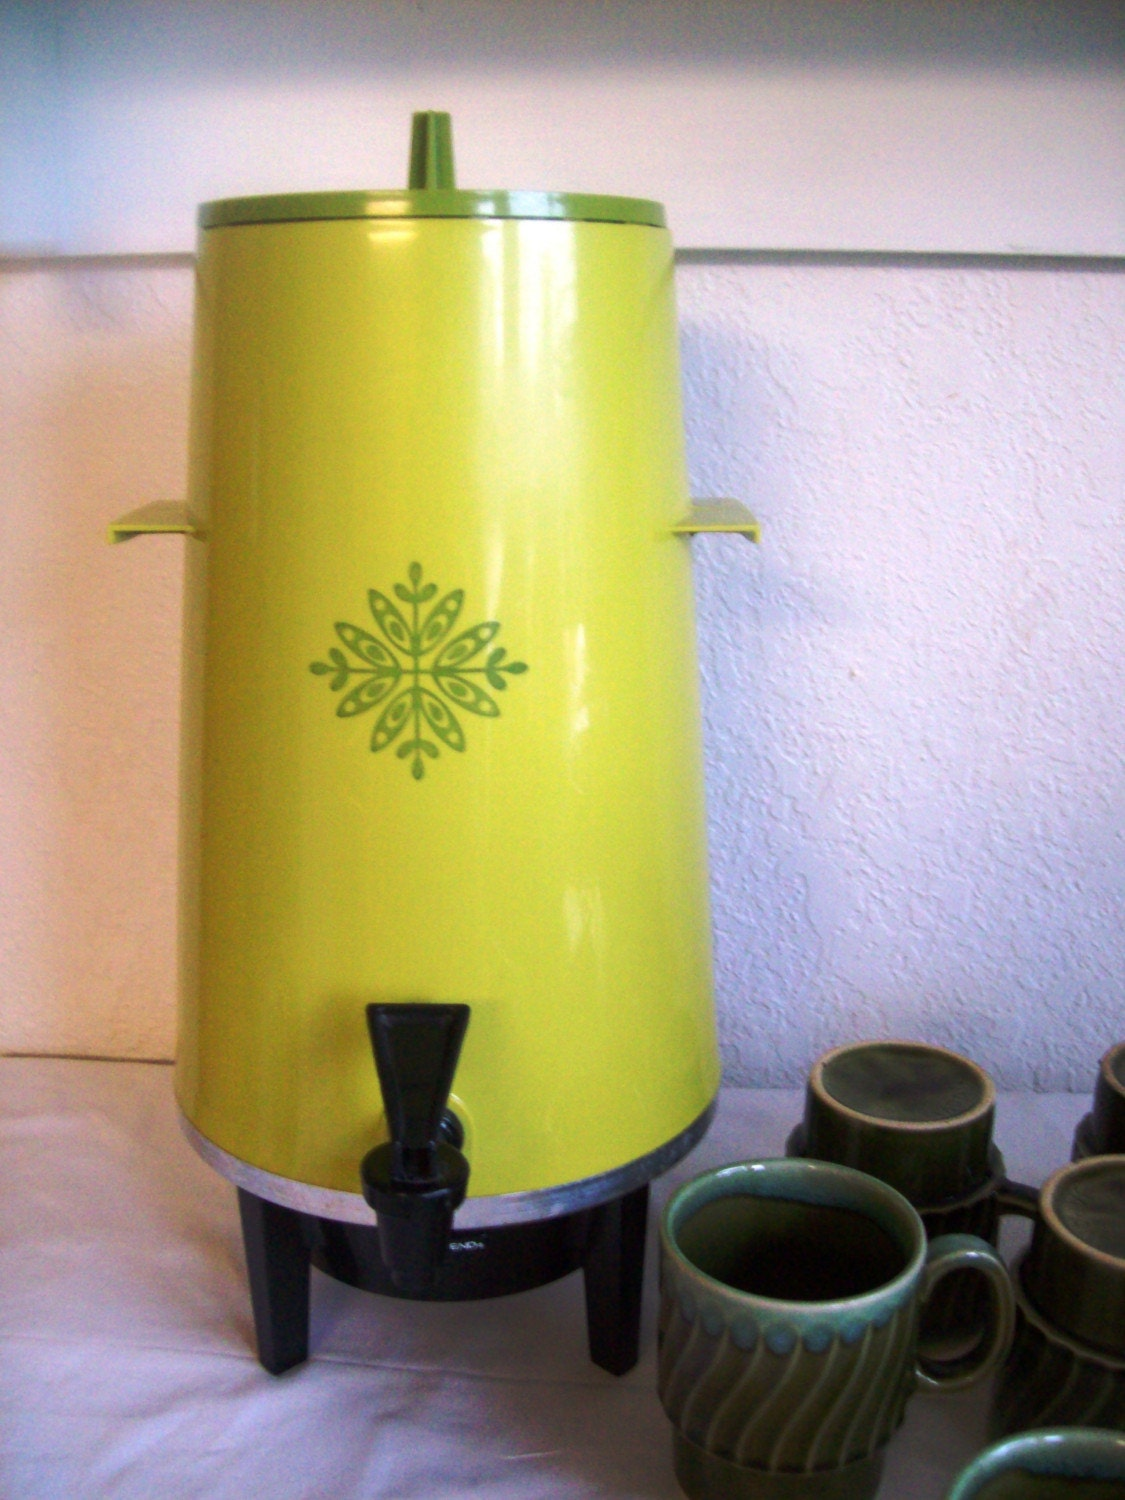 Coffee Maker 20 Cup : Vintage 20 Cup Coffee Maker by theartfulcodger on Etsy